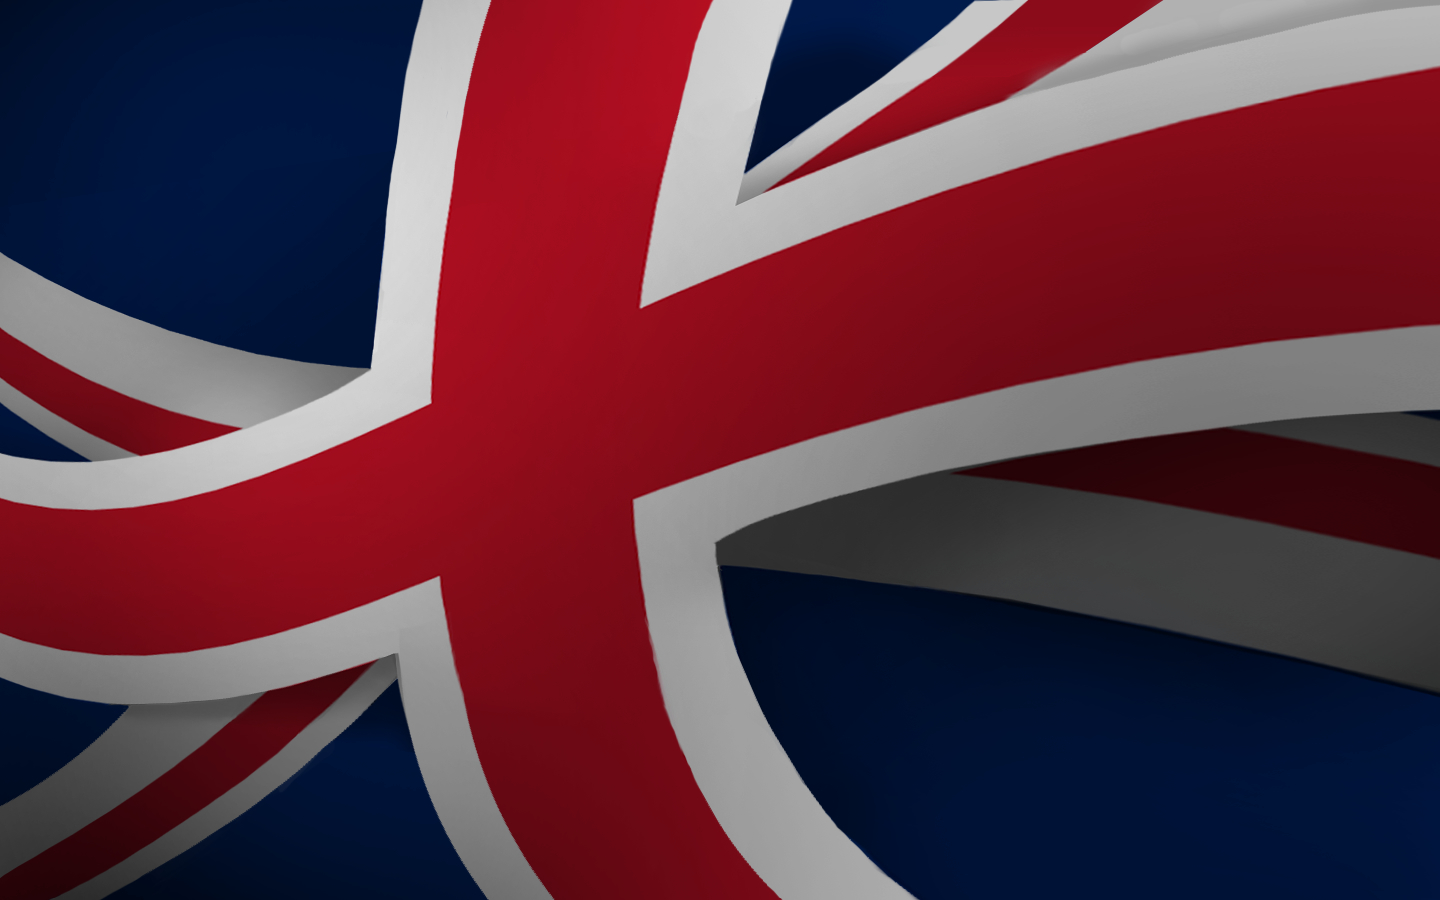 Flags united kingdom union